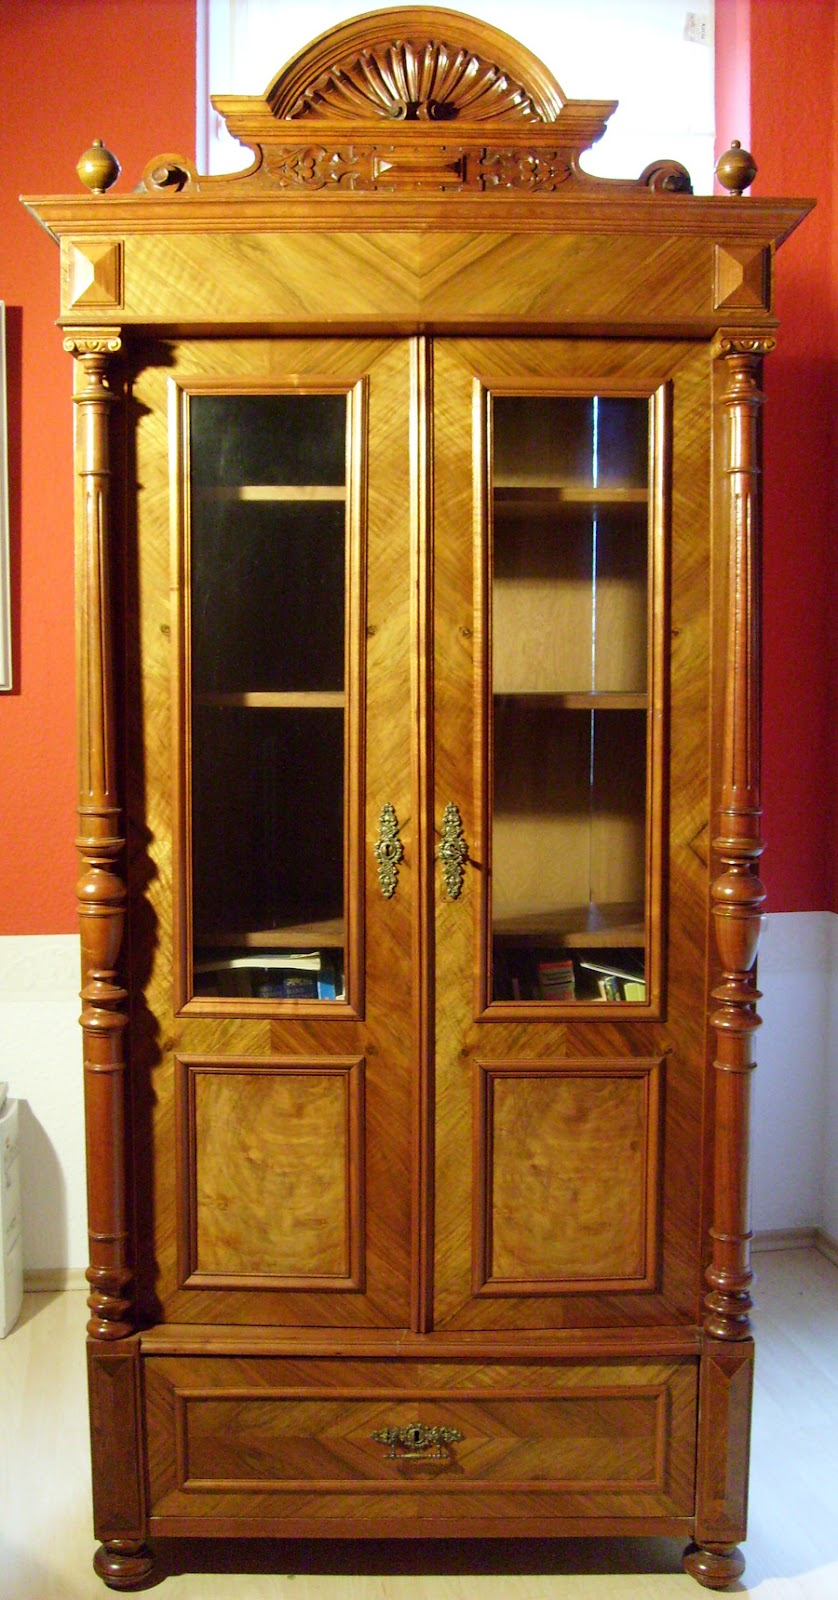 Cupboard Furniture Design Beauteous Cupboard Furniture Designs An Interior Design Review